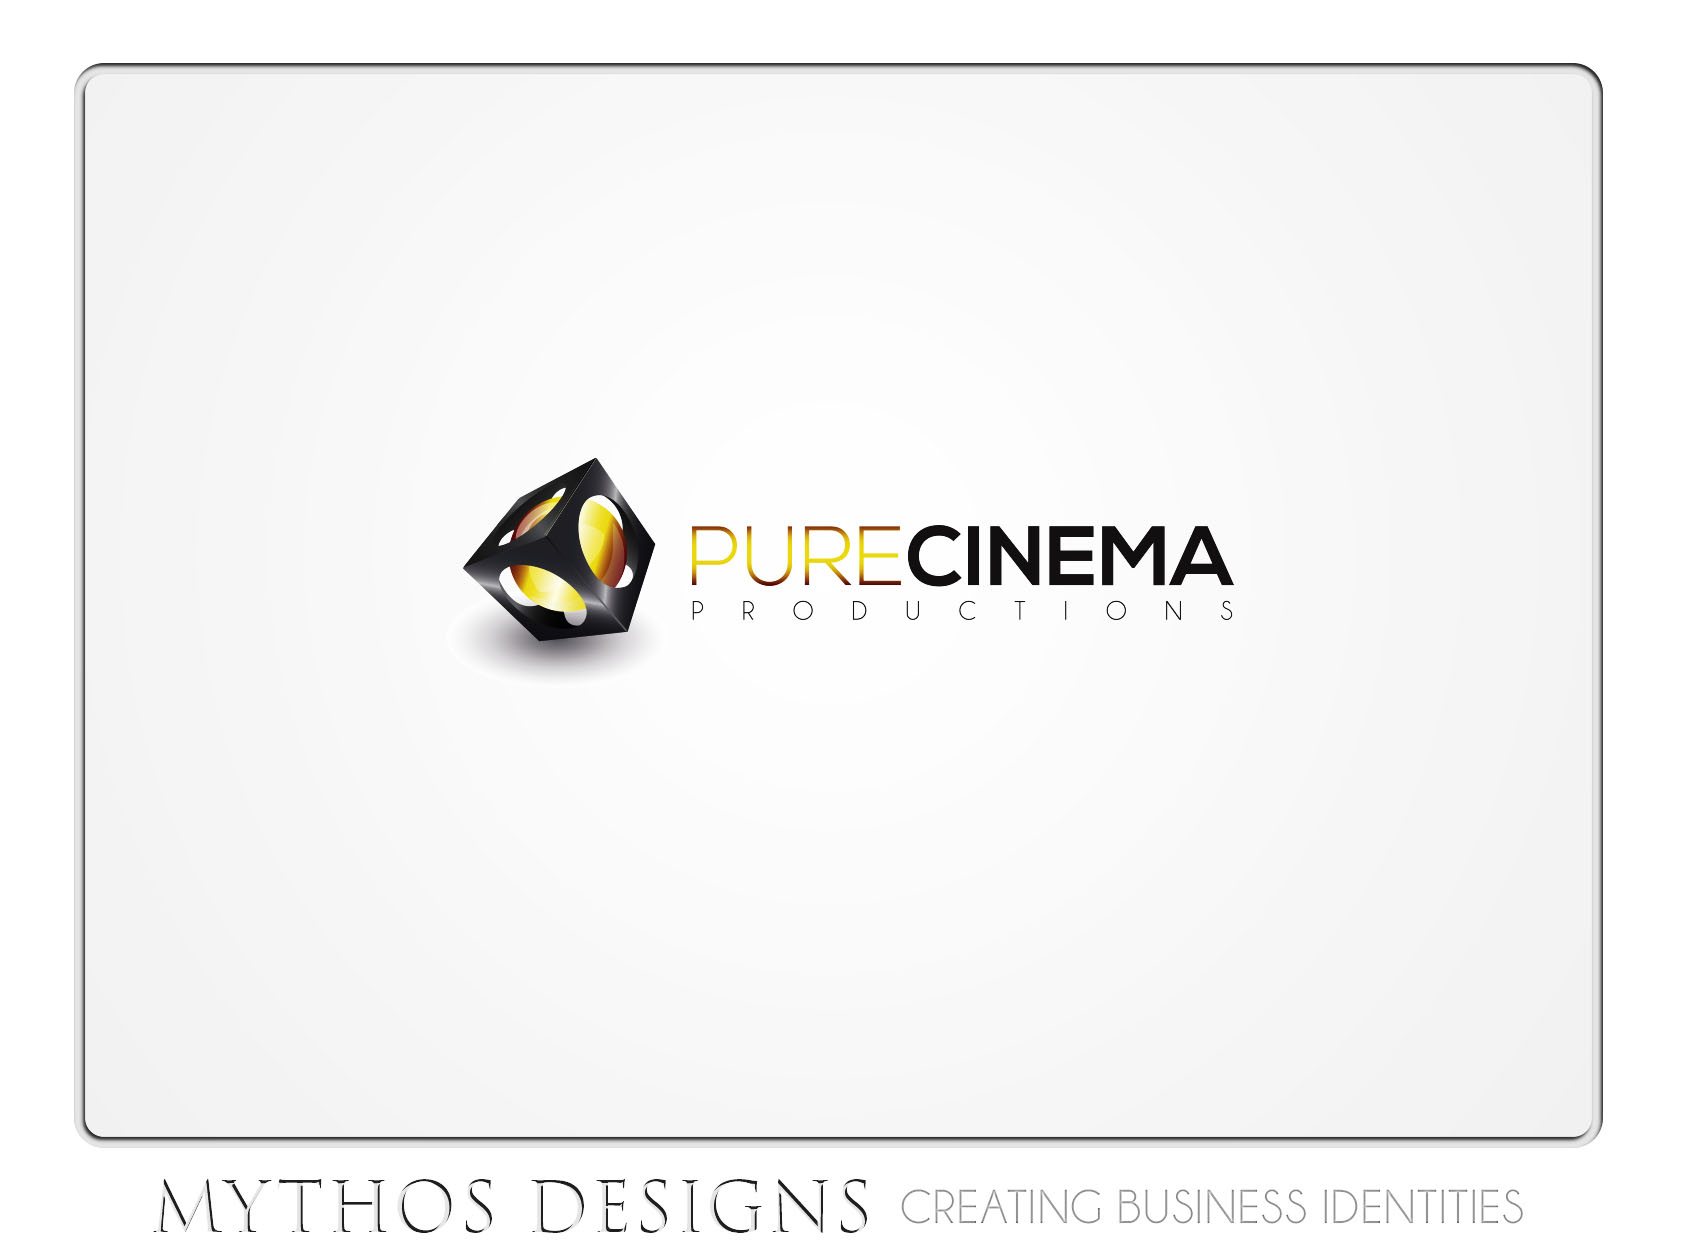 Logo Design by Mythos Designs - Entry No. 92 in the Logo Design Contest Imaginative Logo Design for Pure Cinema.